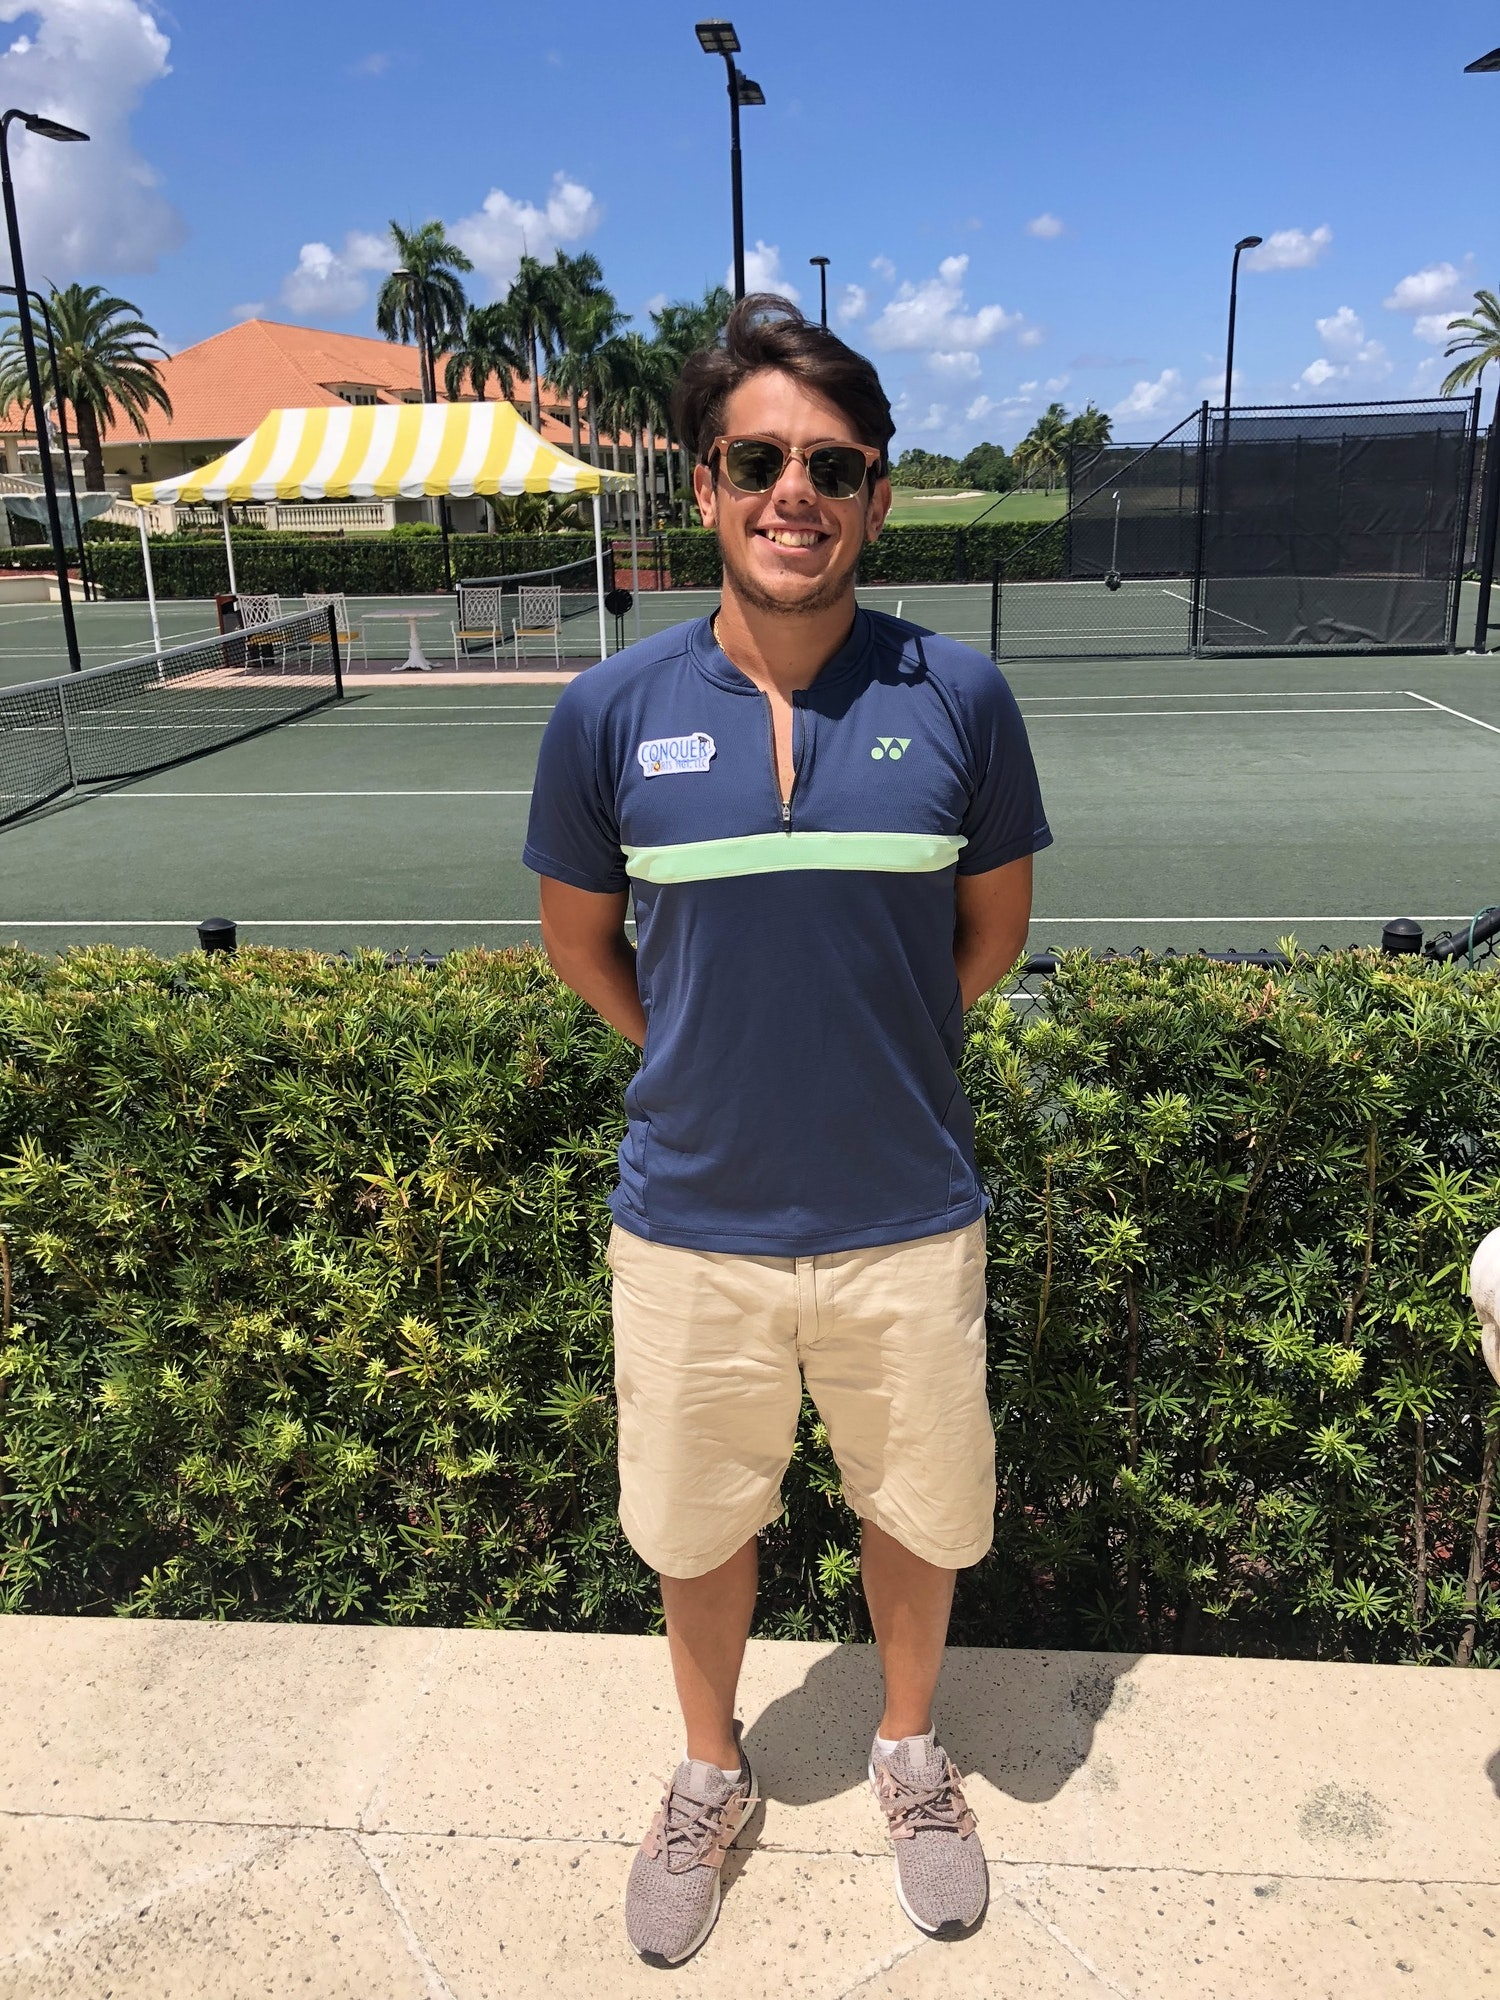 Guilherme F. teaches tennis lessons in Miami, FL